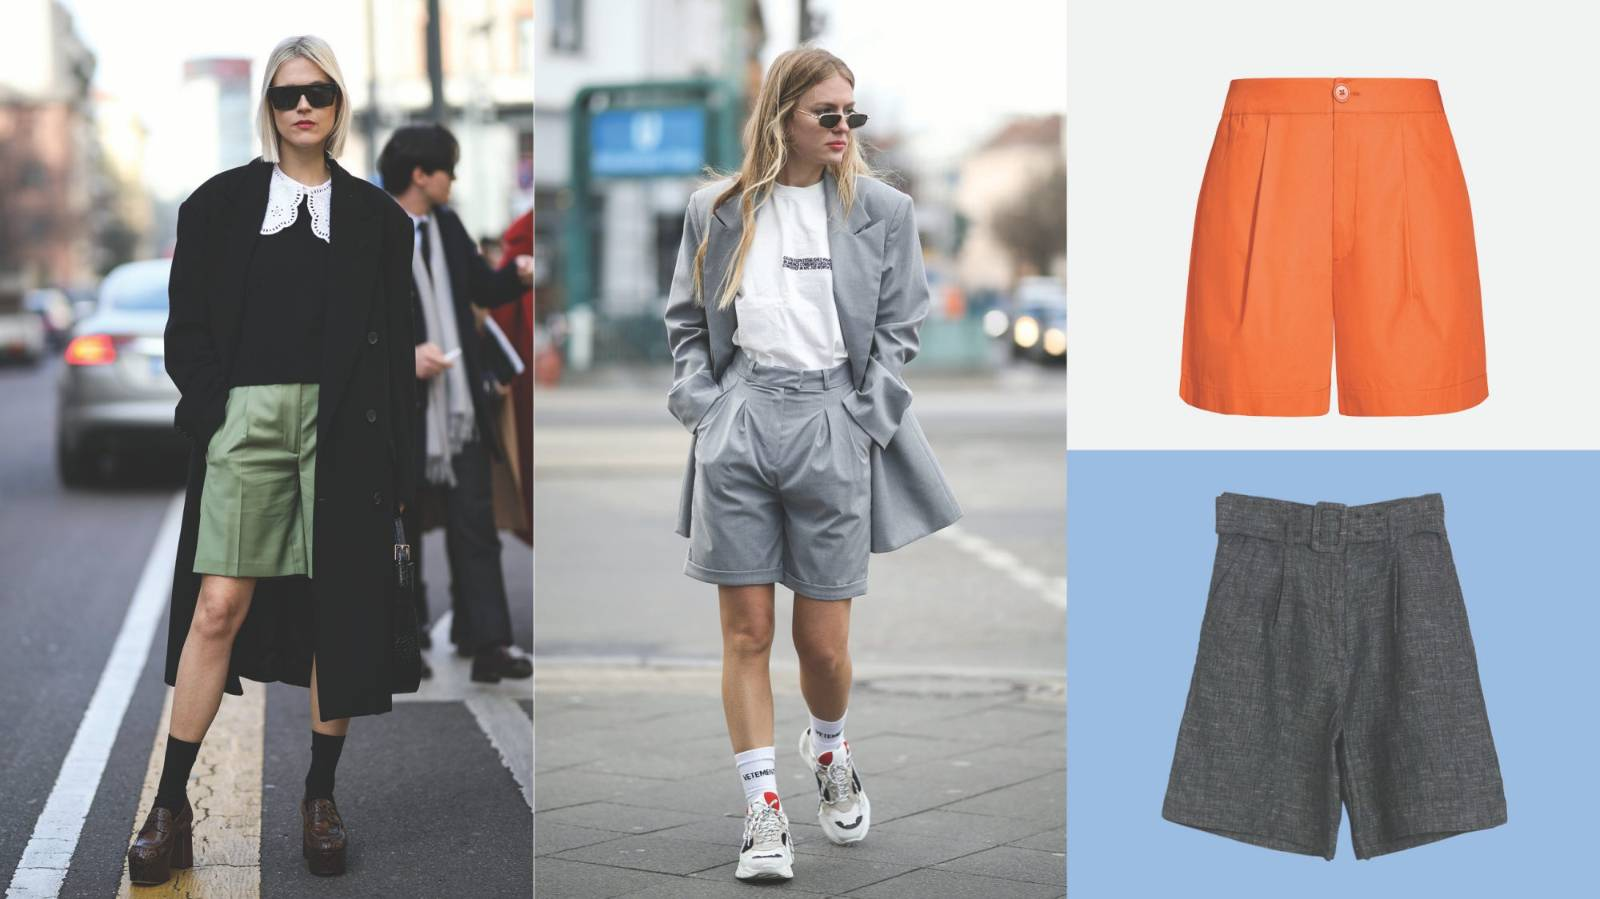 The short suit is the newest and coolest version of the work suit